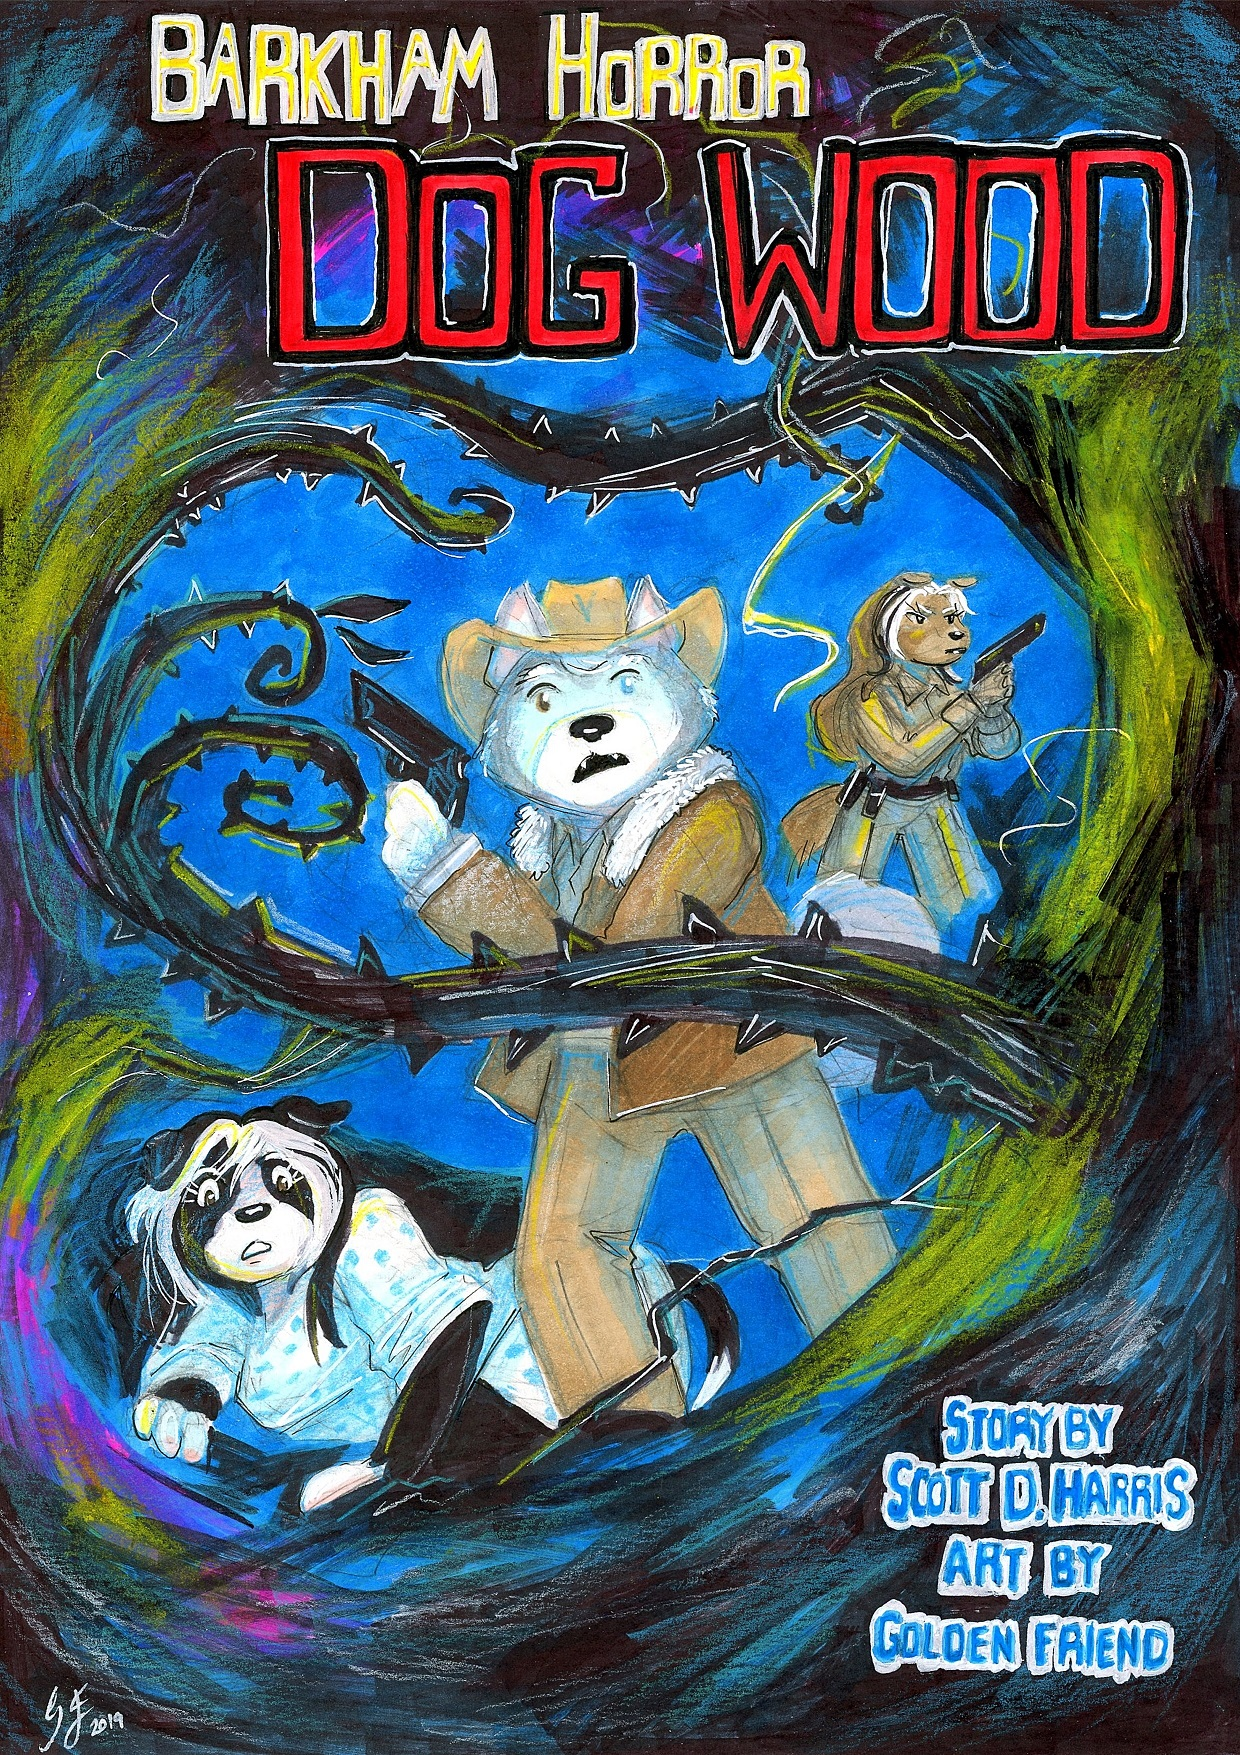 Chapter 2: Dog Wood